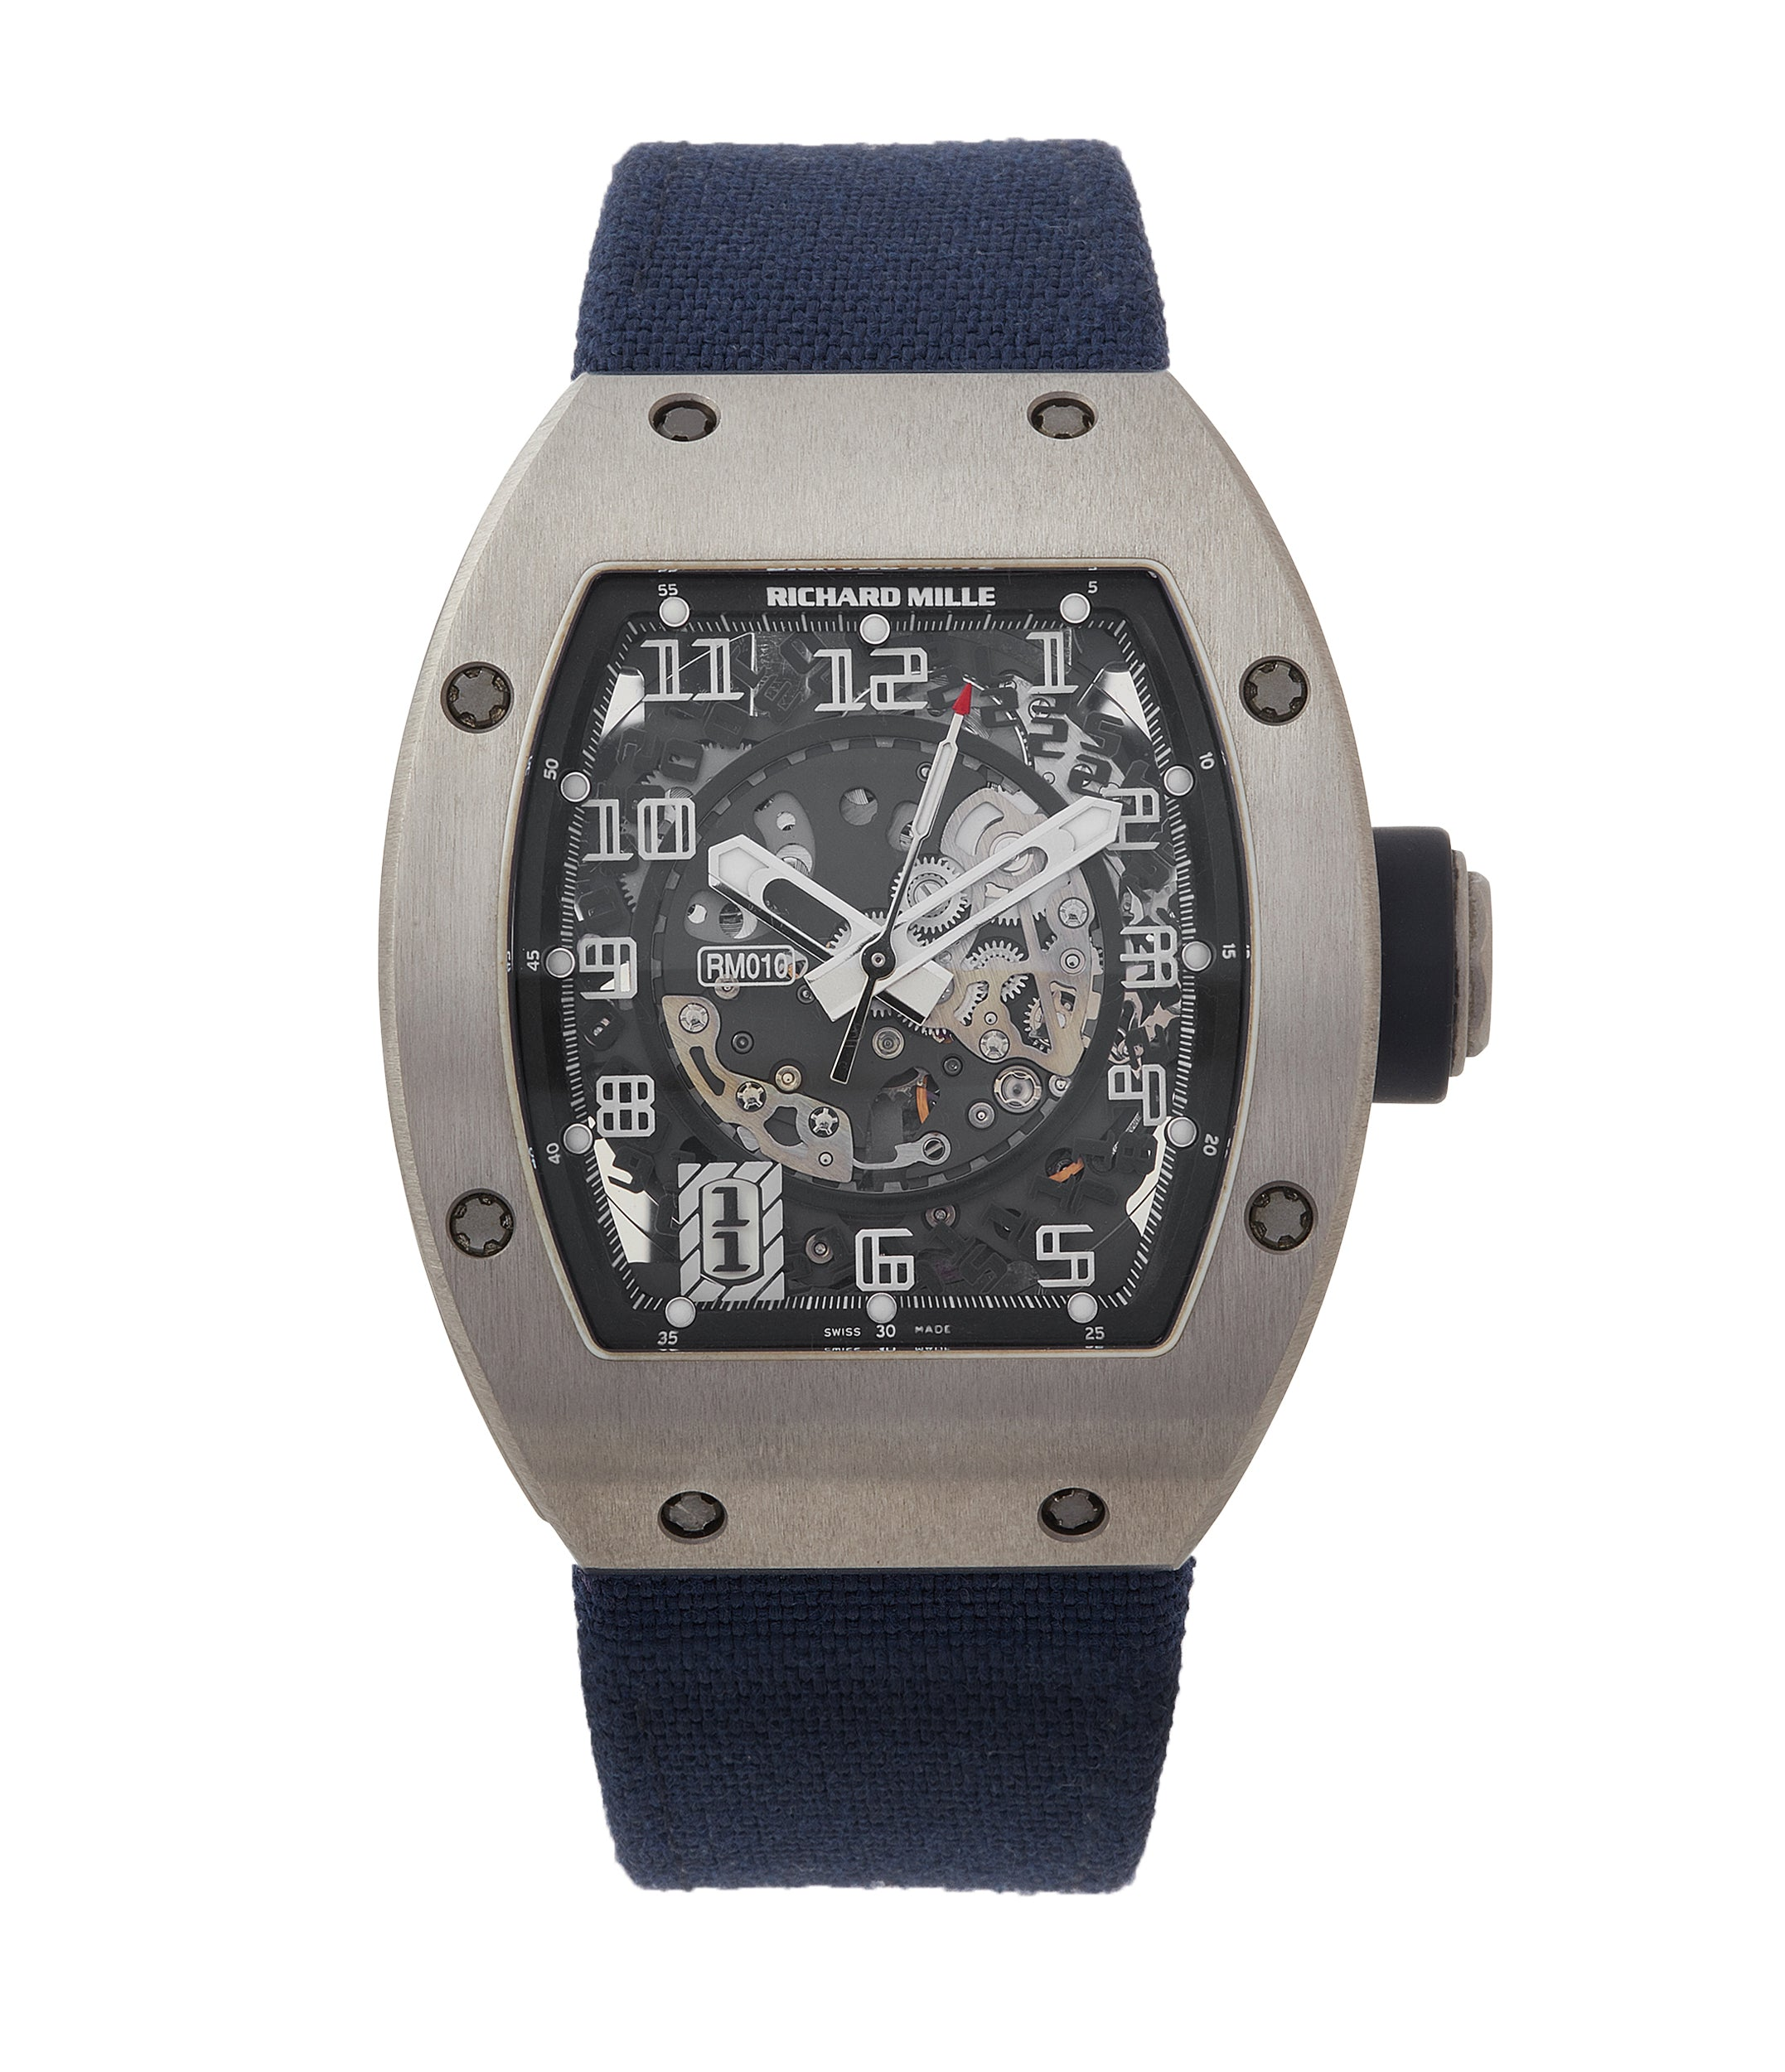 buy Richard Mille RM010 titanium rare luxury sport watch by independent watchmaker for sale online at A Collected Man London UK specialist of rare watches